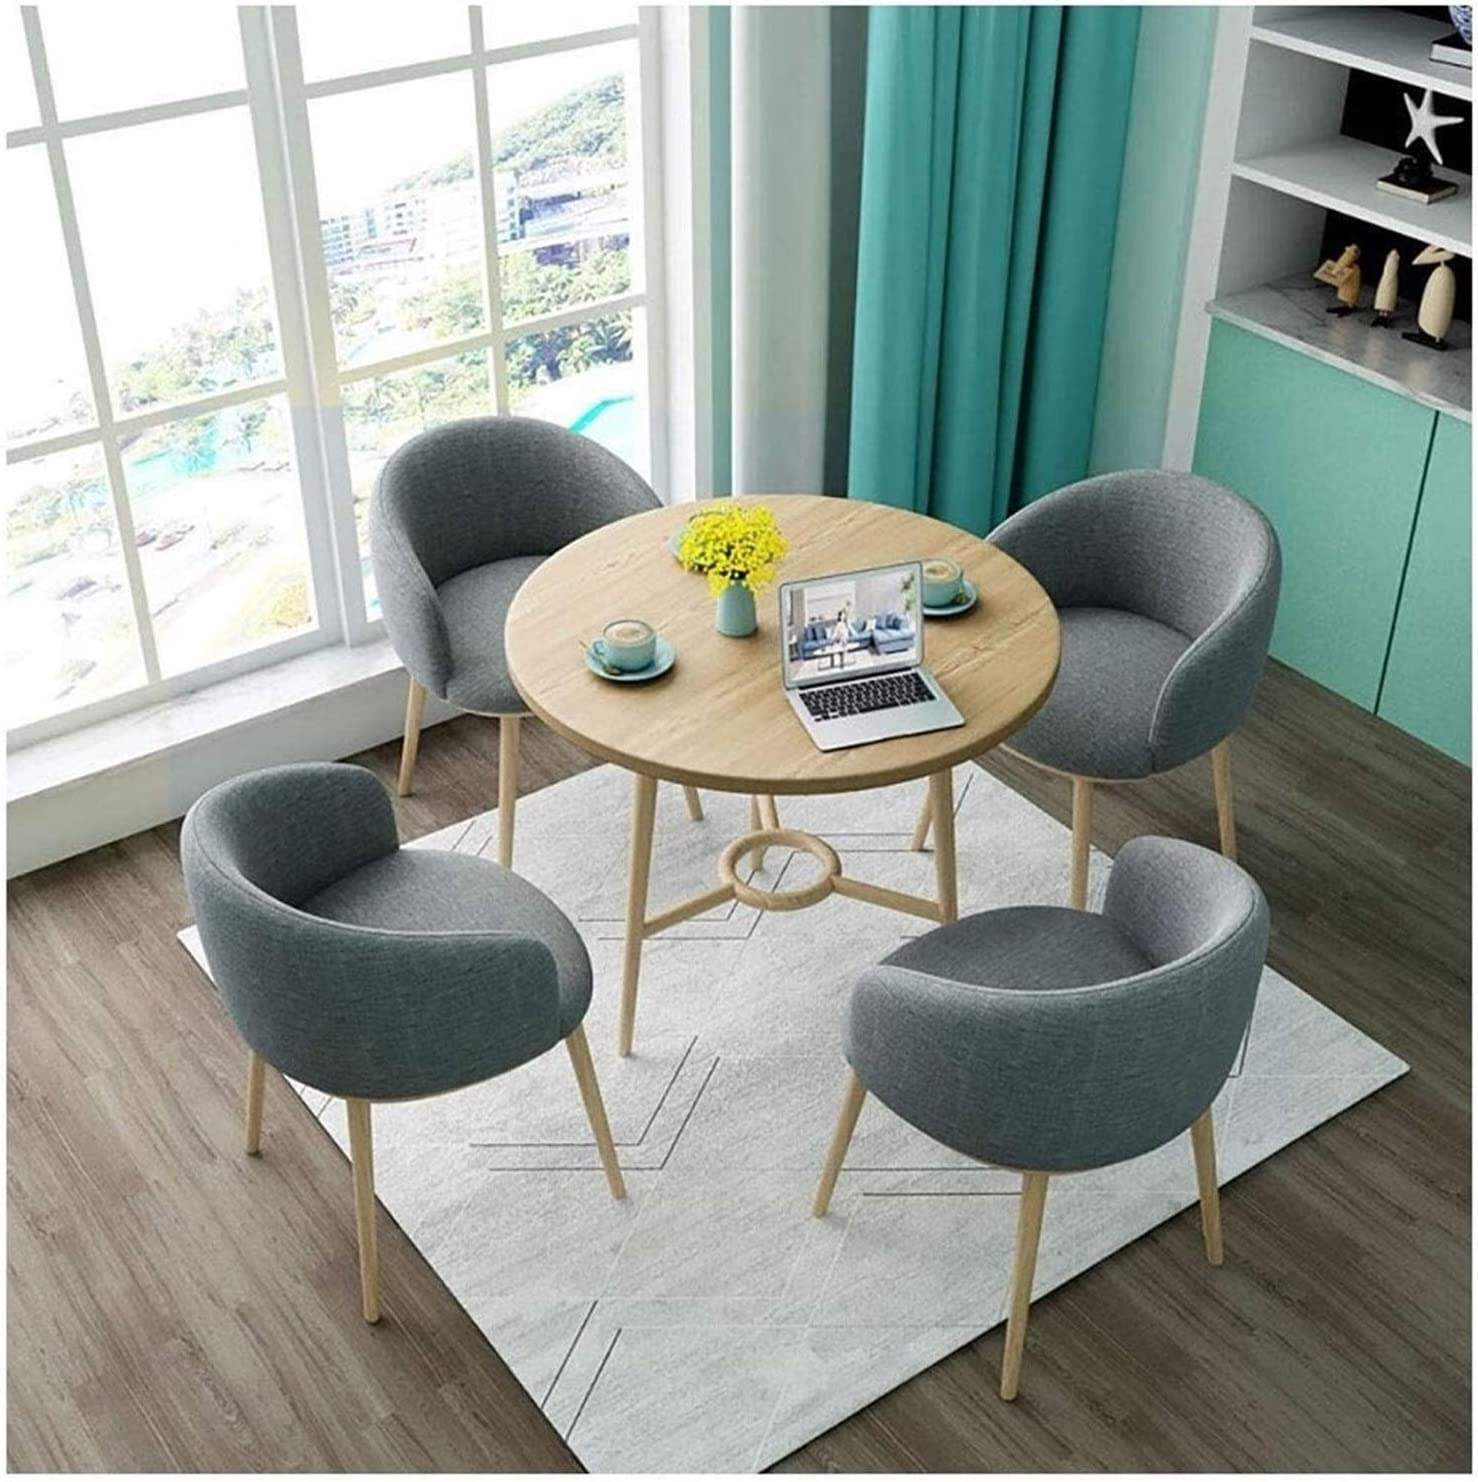 BUYT Arlington Mall Ranking TOP7 Office Reception Room Club Coffee Chair Set Table and